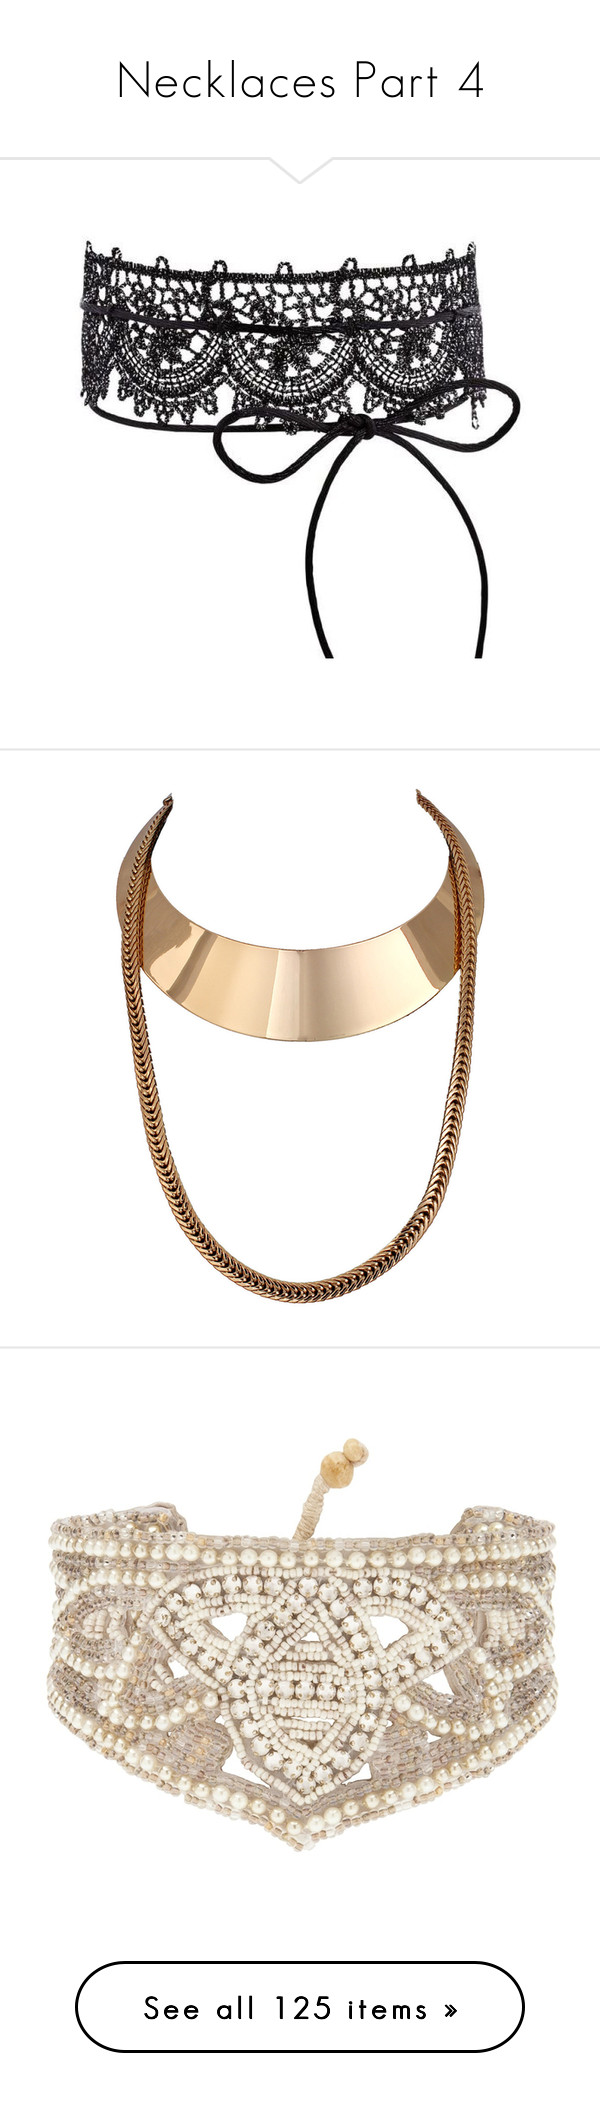 """""""Necklaces Part 4"""" by allison-epps ❤ liked on Polyvore featuring jewelry, lace jewelry, necklaces, choker necklaces, chain choker, chain necklaces, chain choker necklace, chain jewellery, accessories and belts"""